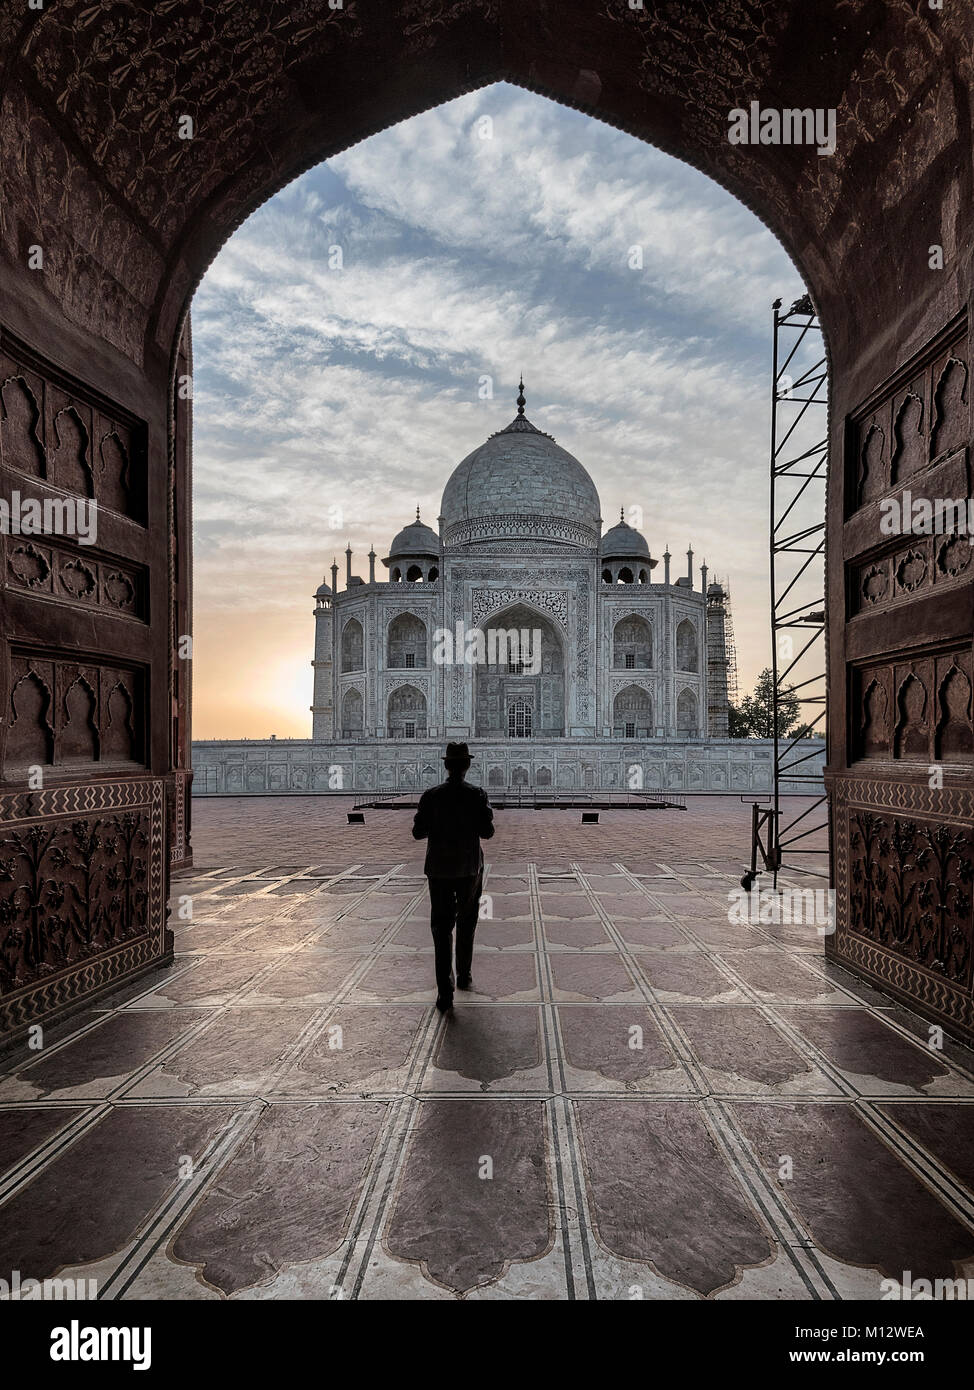 Tourist waking out of the prayer tomb to visit other spots inside Taj Mahal, Agra, India - Stock Image